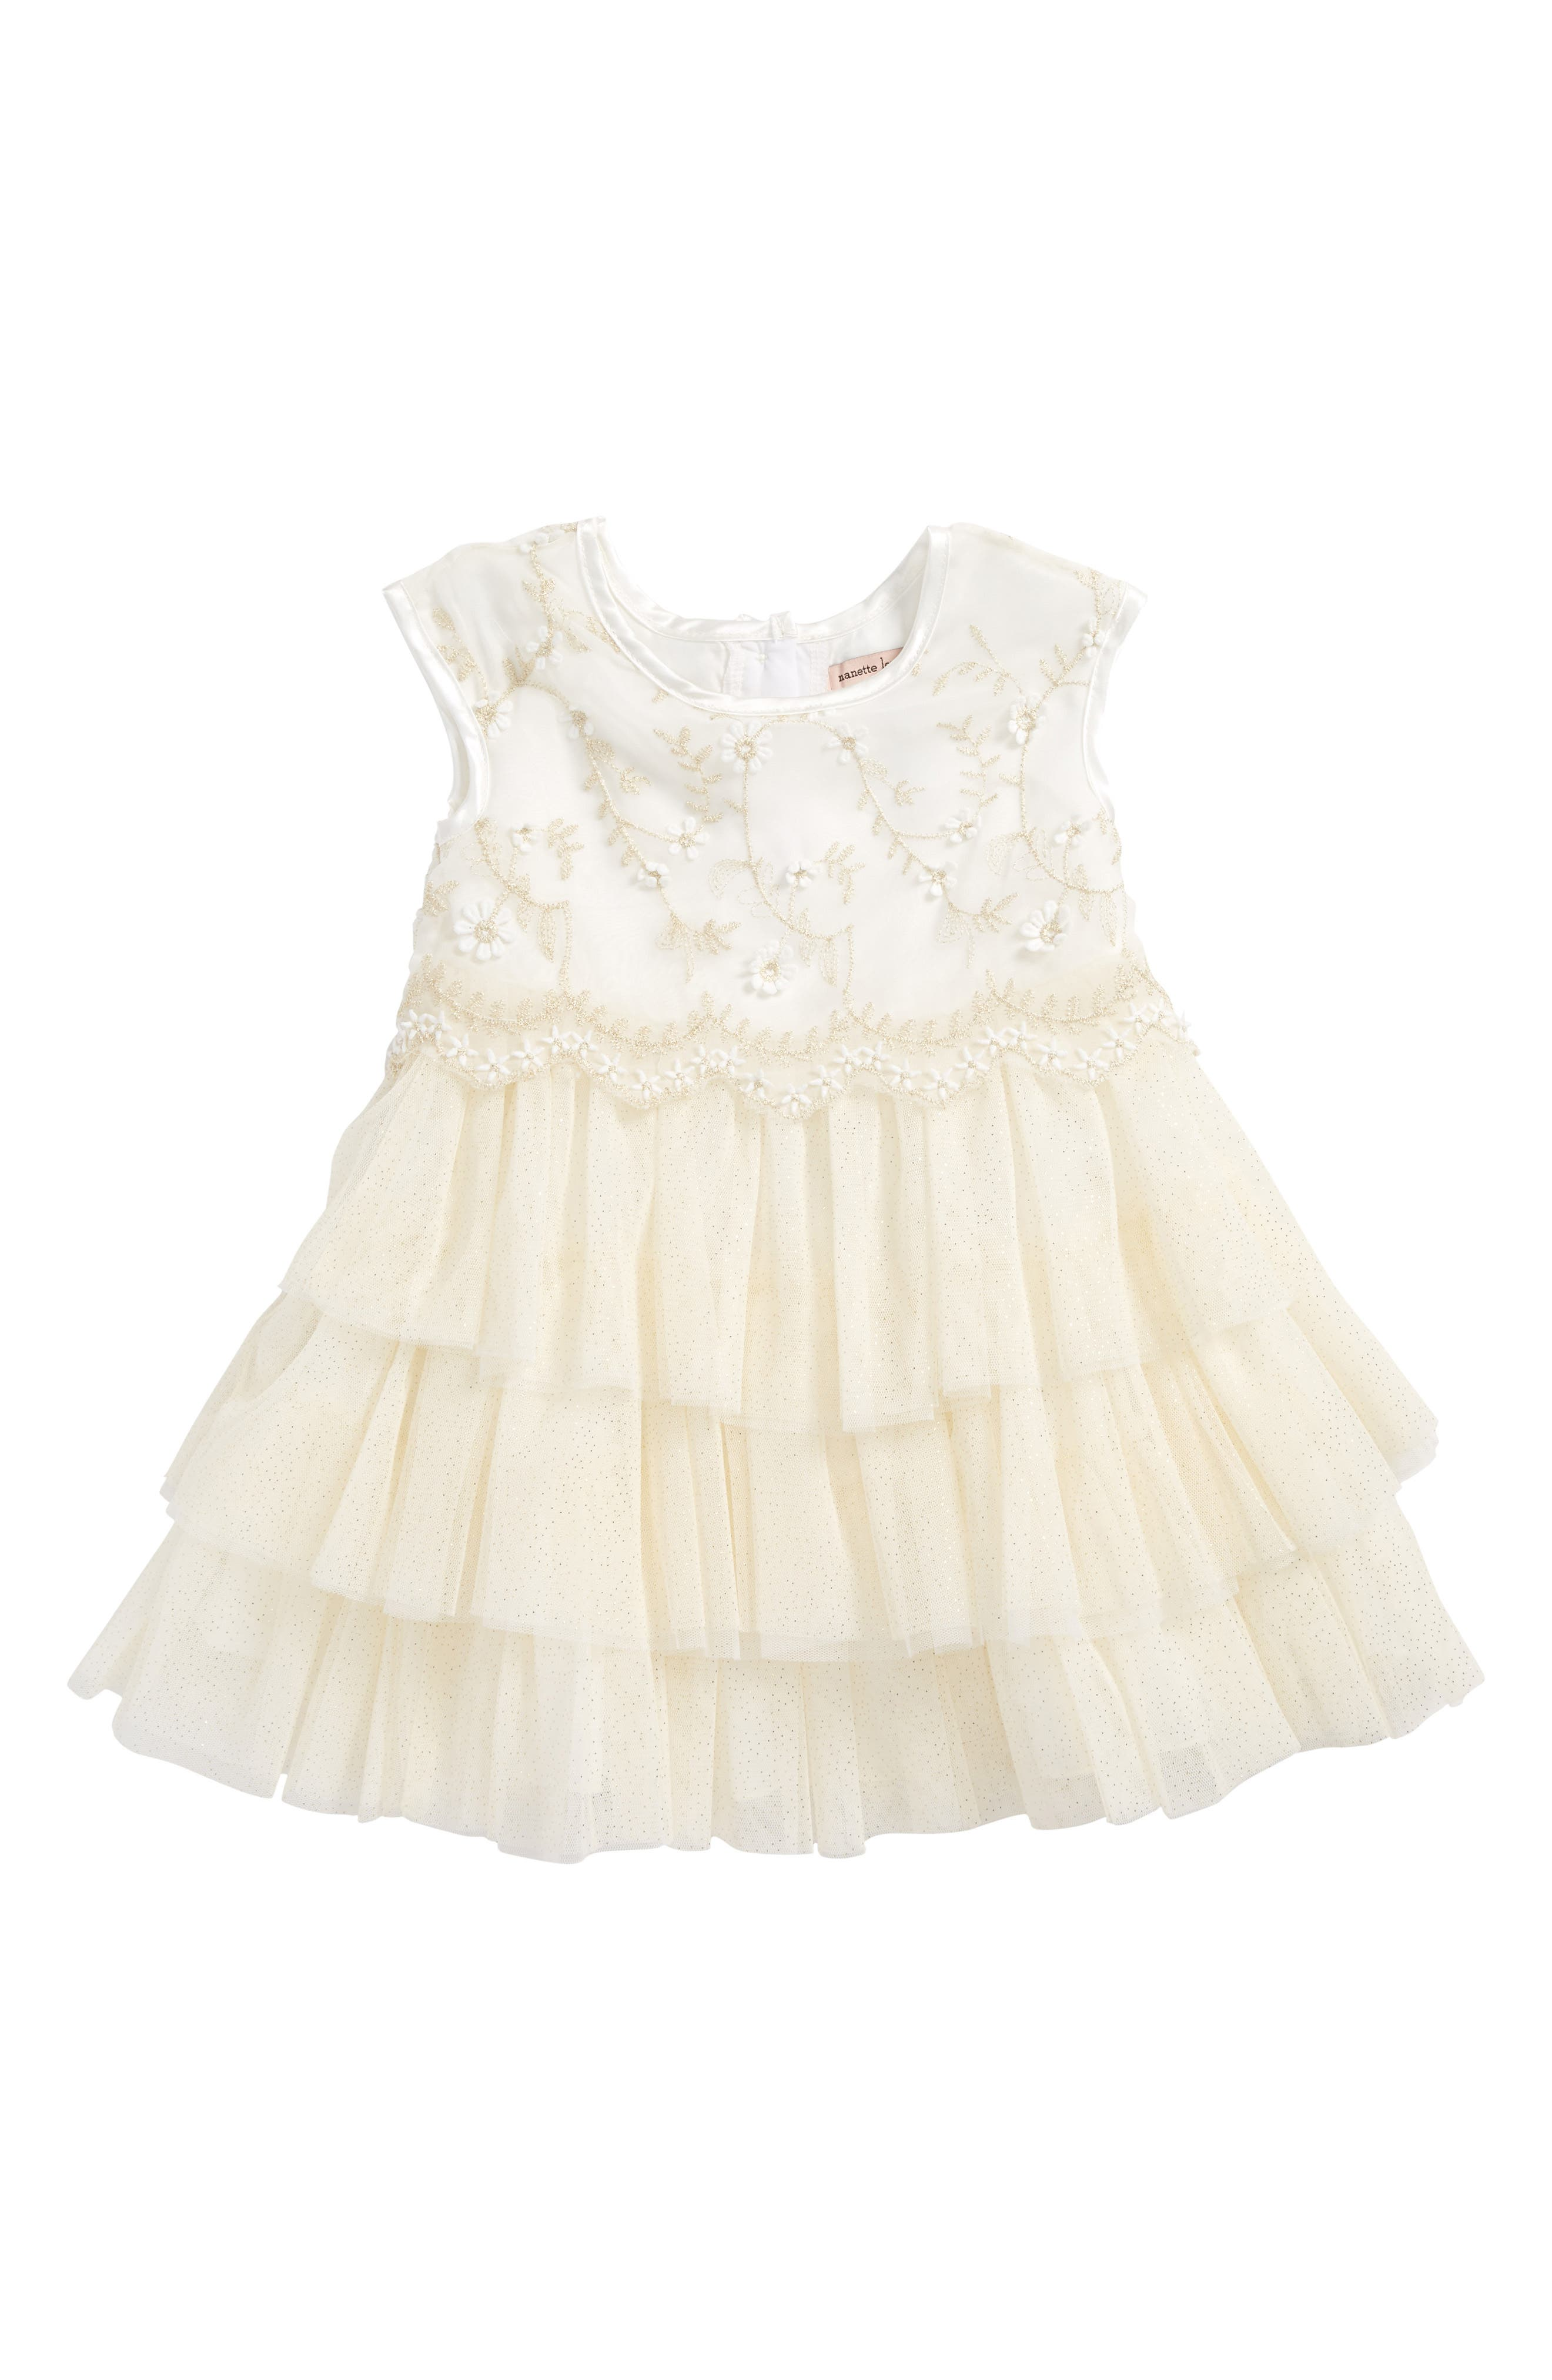 Embroidered Tulle Dress,                         Main,                         color, Cream